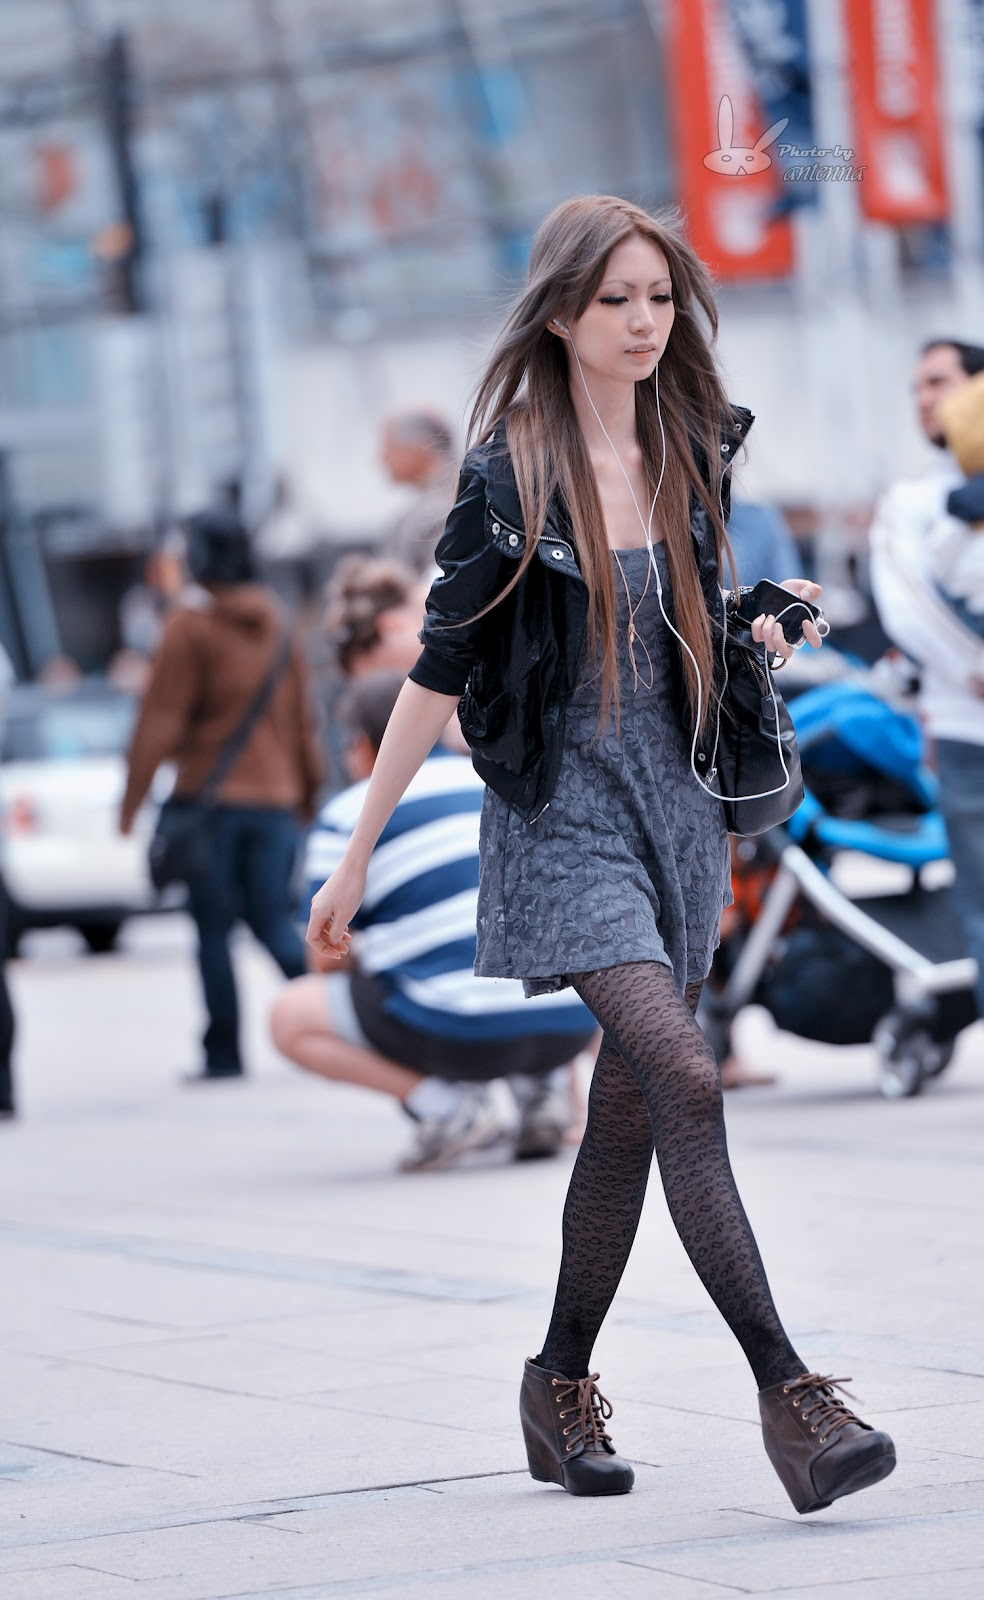 Z 39 S Street Fashion Photography Punk Style Asian Girl